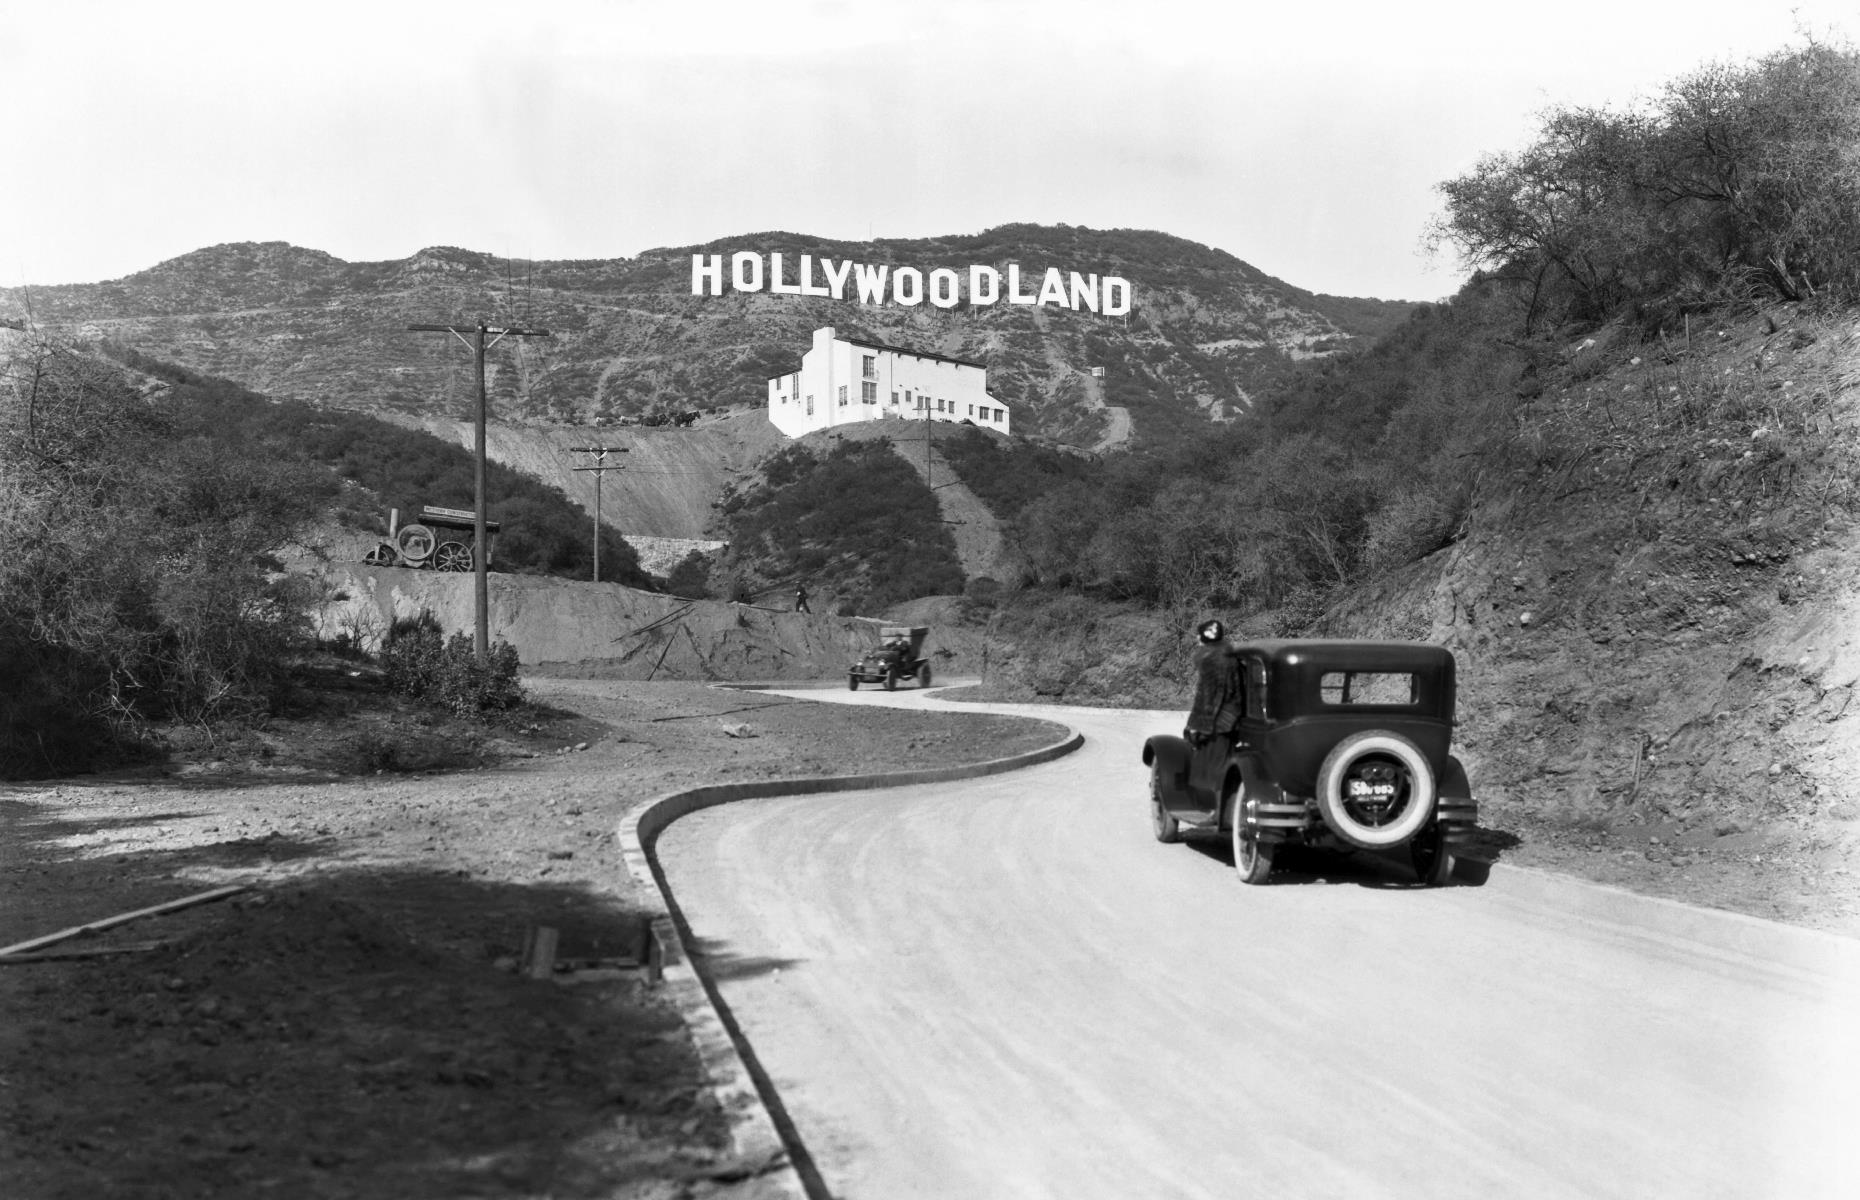 """Slide 31 of 32: The Hollywood Hills might look rather bare without their world-famous signbut the ginormous white letters wereonly meant to be a temporary instalment. The sign originally read """"Hollywoodland"""" and was erected to mark a brand new housing development in the 1920s. Its creators intended it to stand over the swathe of swanky real estate for a year and a half. Take a look at America's historic attractions in their heyday."""